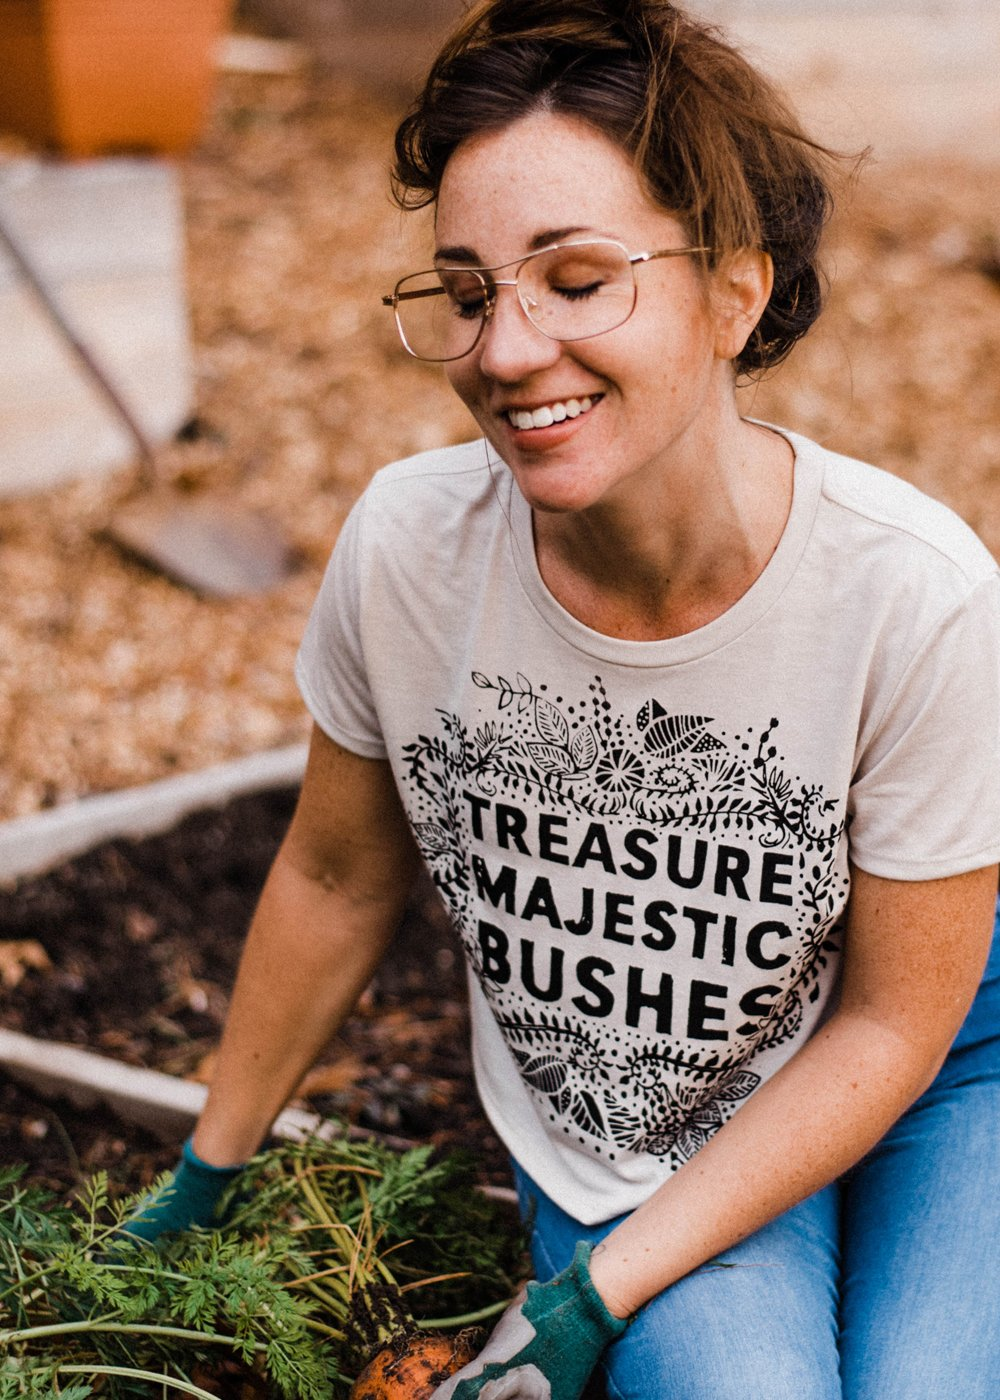 Majestic Bushes - bone - 5% donated to Planned Parenthood